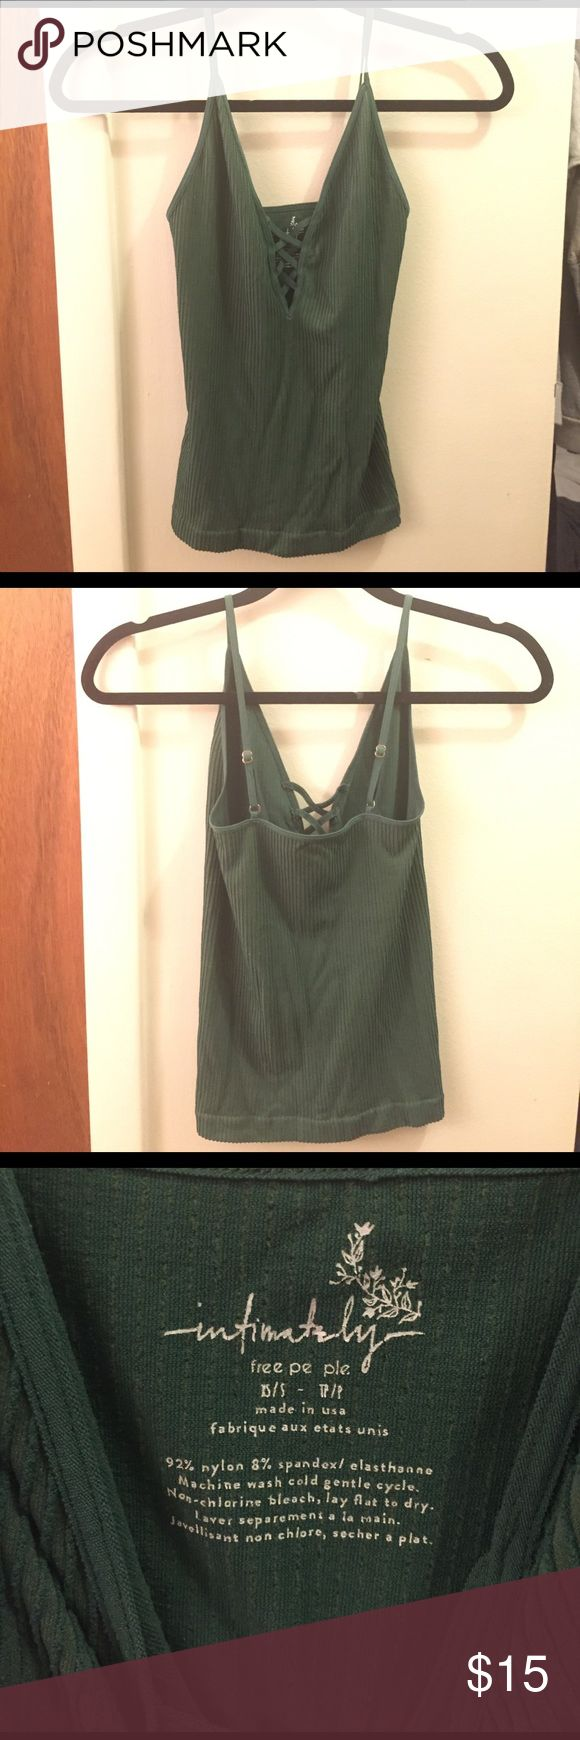 Green Criss-cross V-Neck Cami Tank Top Stretchy green cami/tank top from Free People Intimates. Size XS/S. Great condition, never been worn. Would go great with jeans or a cute skirt. Free People Tops Camisoles